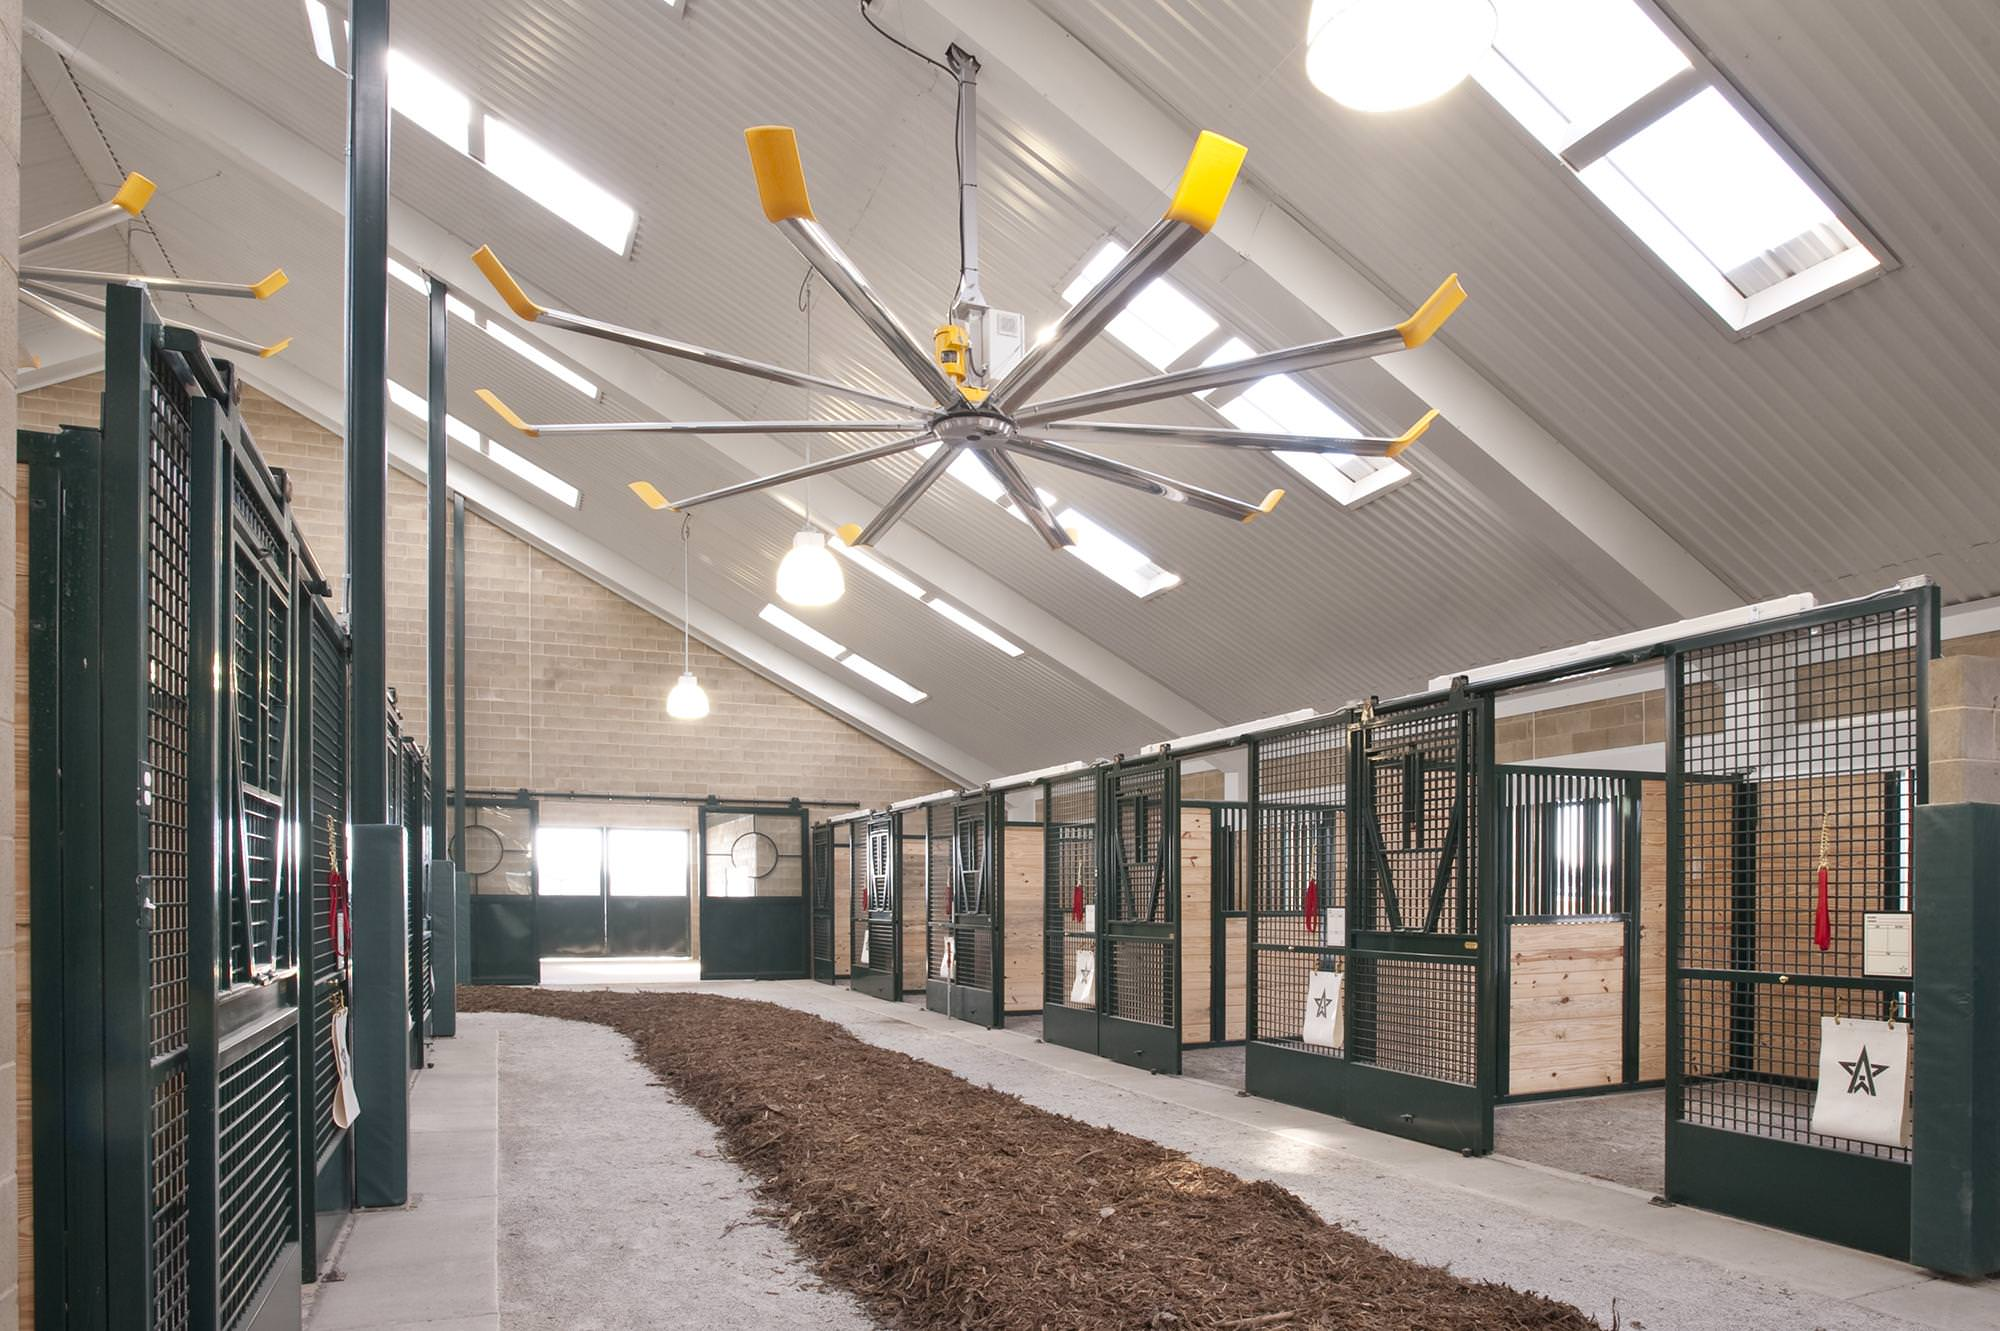 Big Ceiling Fans Australia Large Ceiling Fans For Stables Riding Arenas And Horse